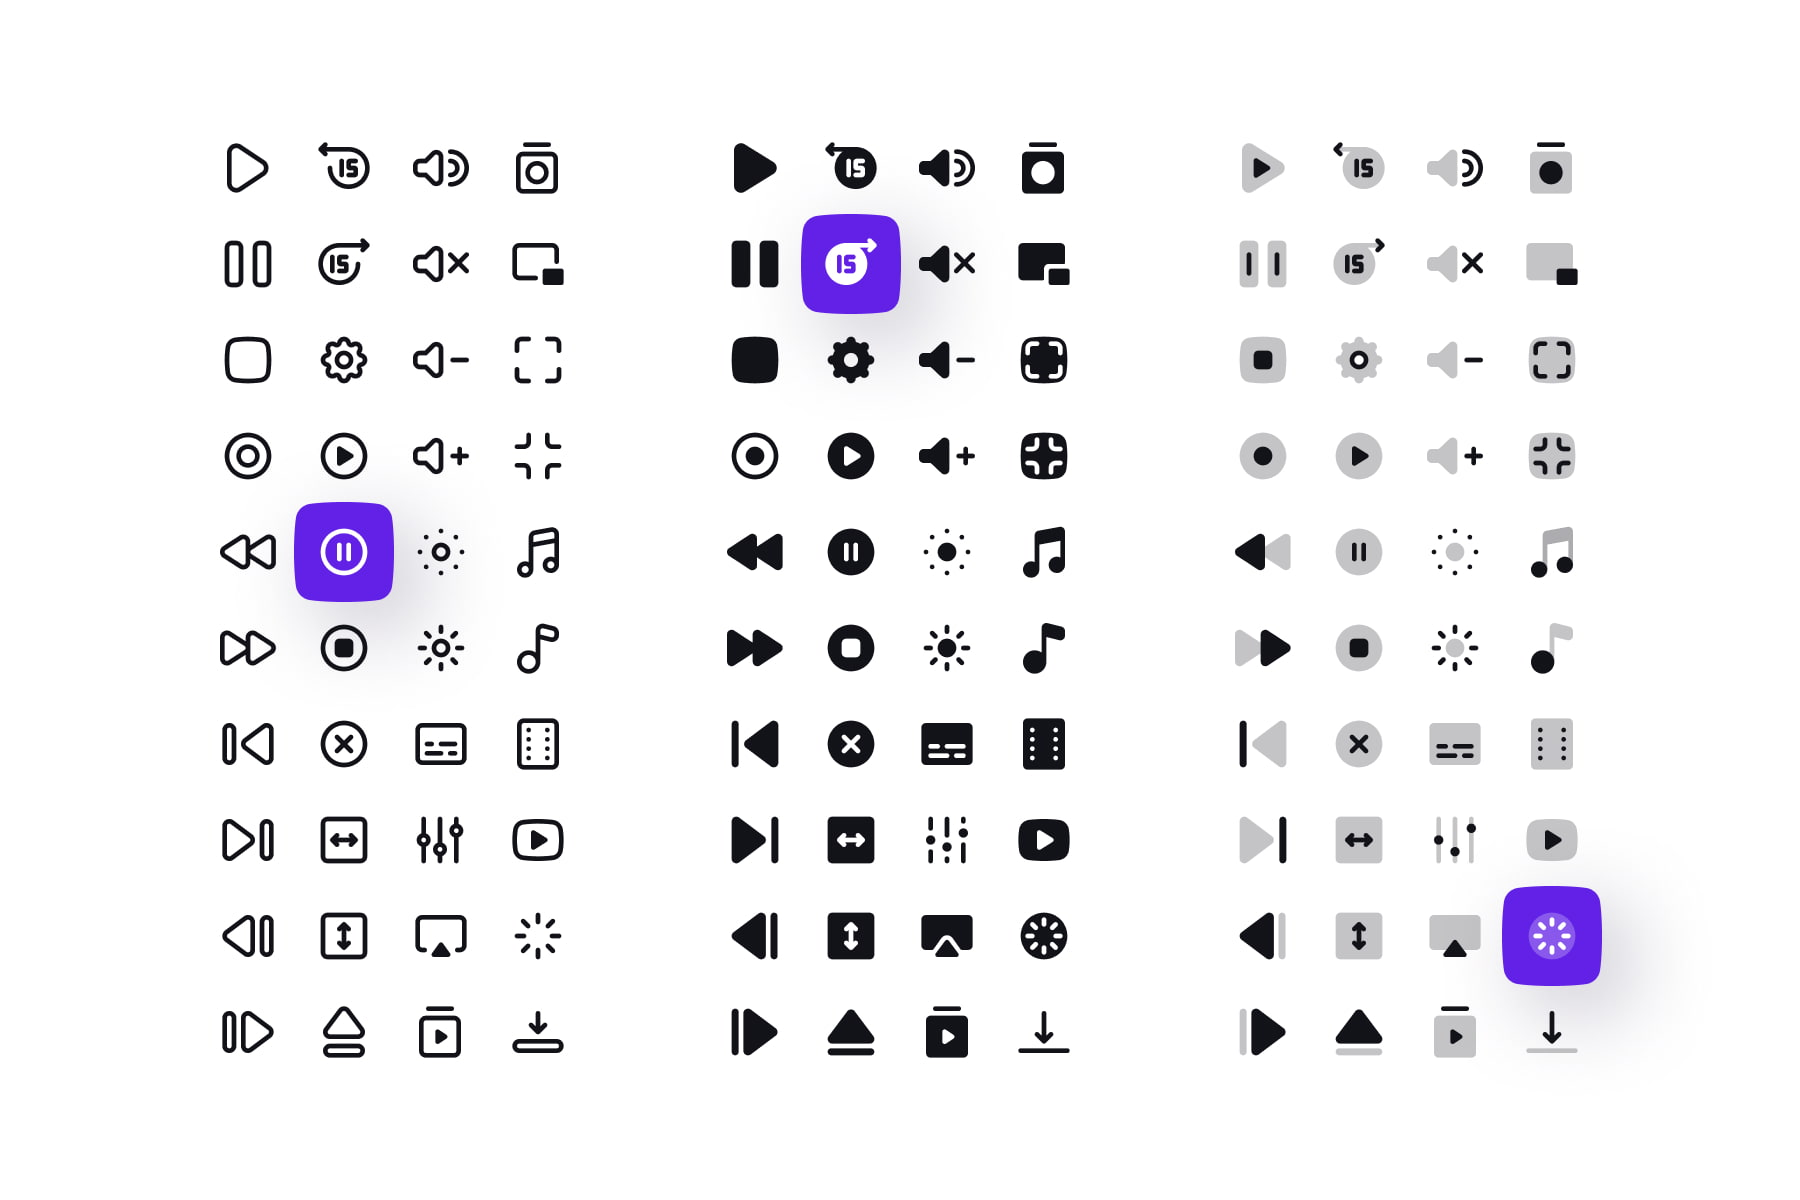 Media Controls Icons in 3 Styles